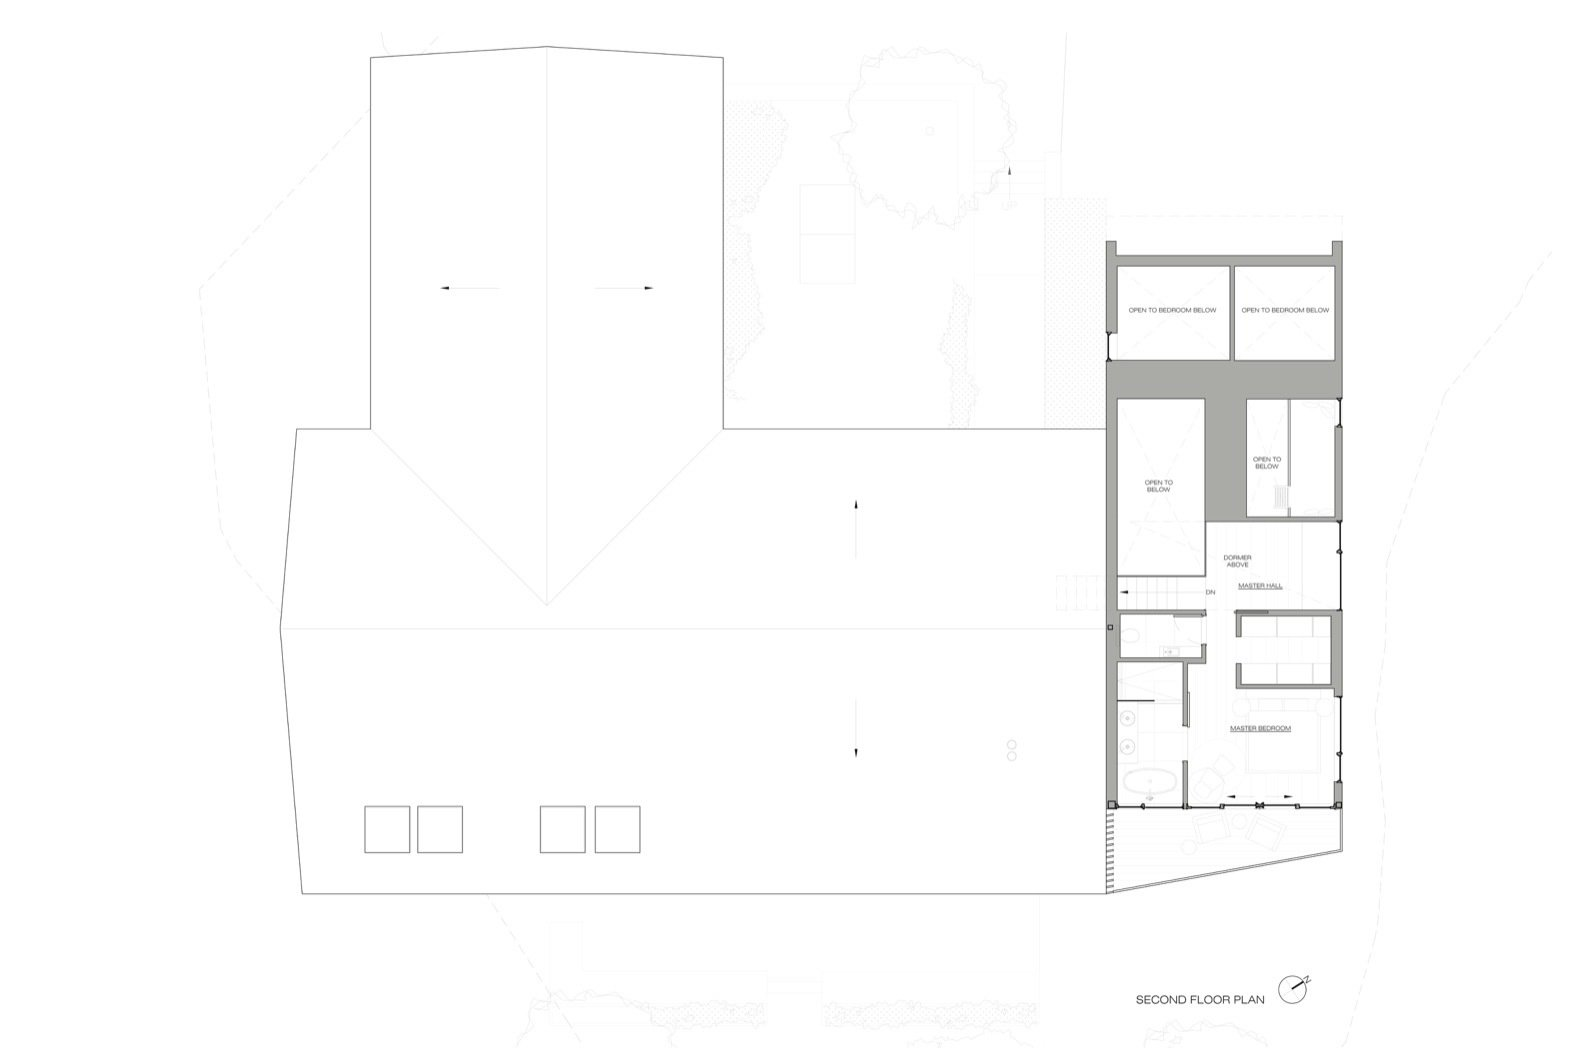 Candlewood Lake House second floor plan